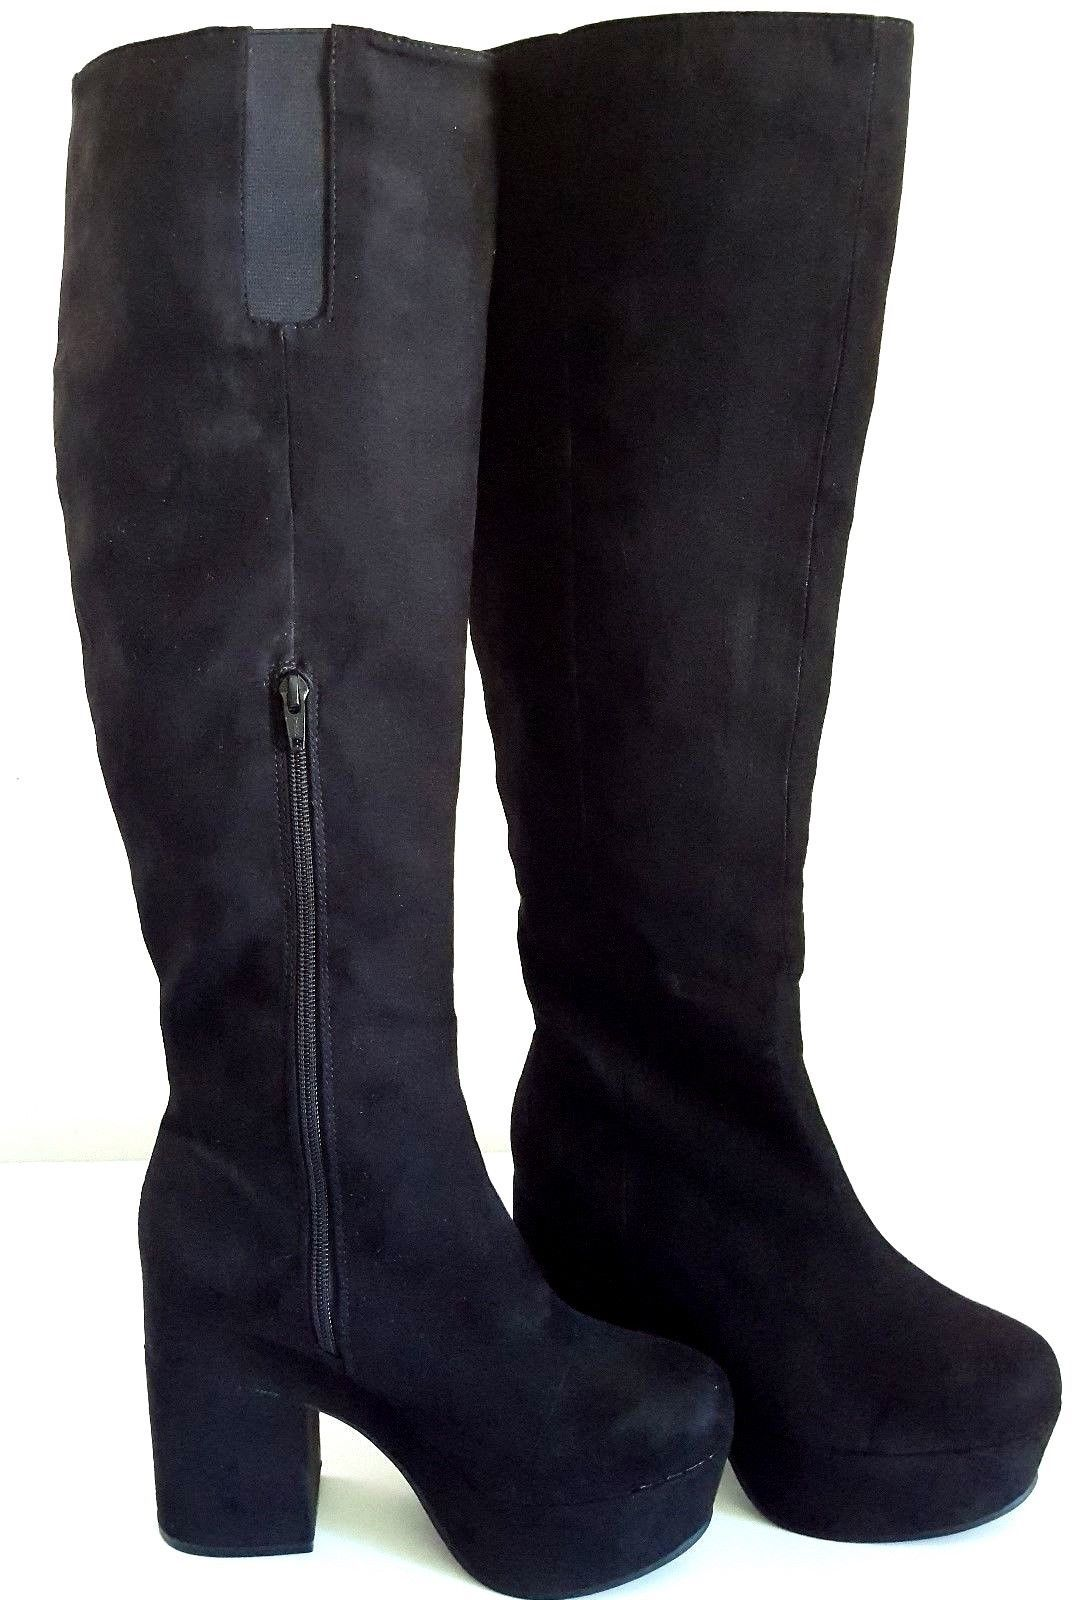 H&M DIVIDED – Women's Block Heel Suede-Like Black Over-the-Knee Boots – Size: 7 - $39.83